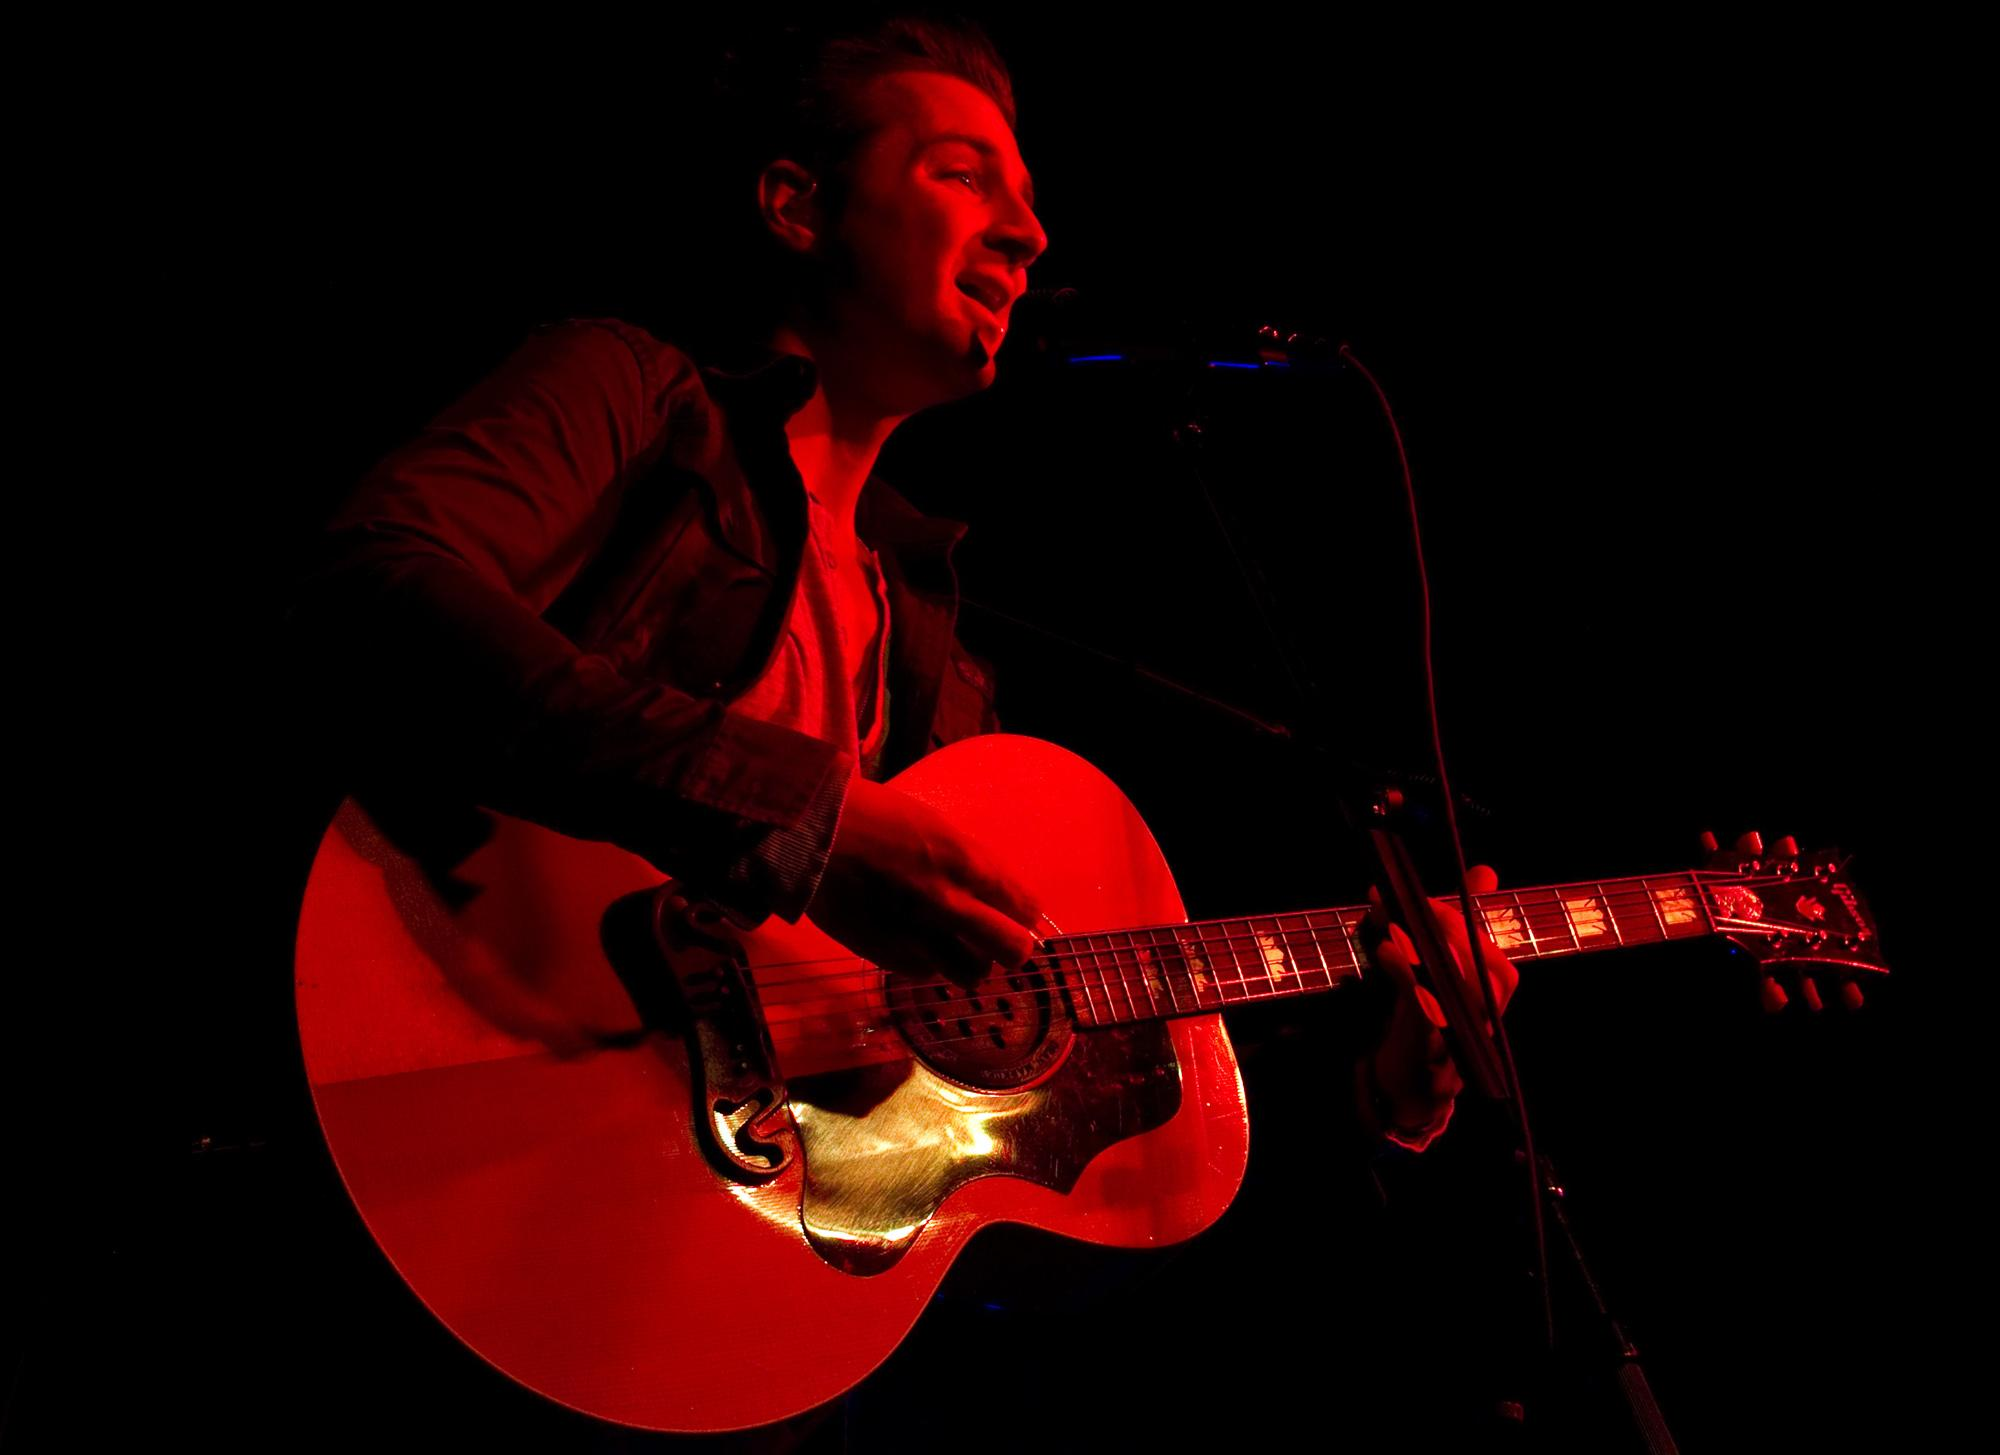 Serenade's John Vesely plays Sacramento's Ace of Spades sans band on March 19.